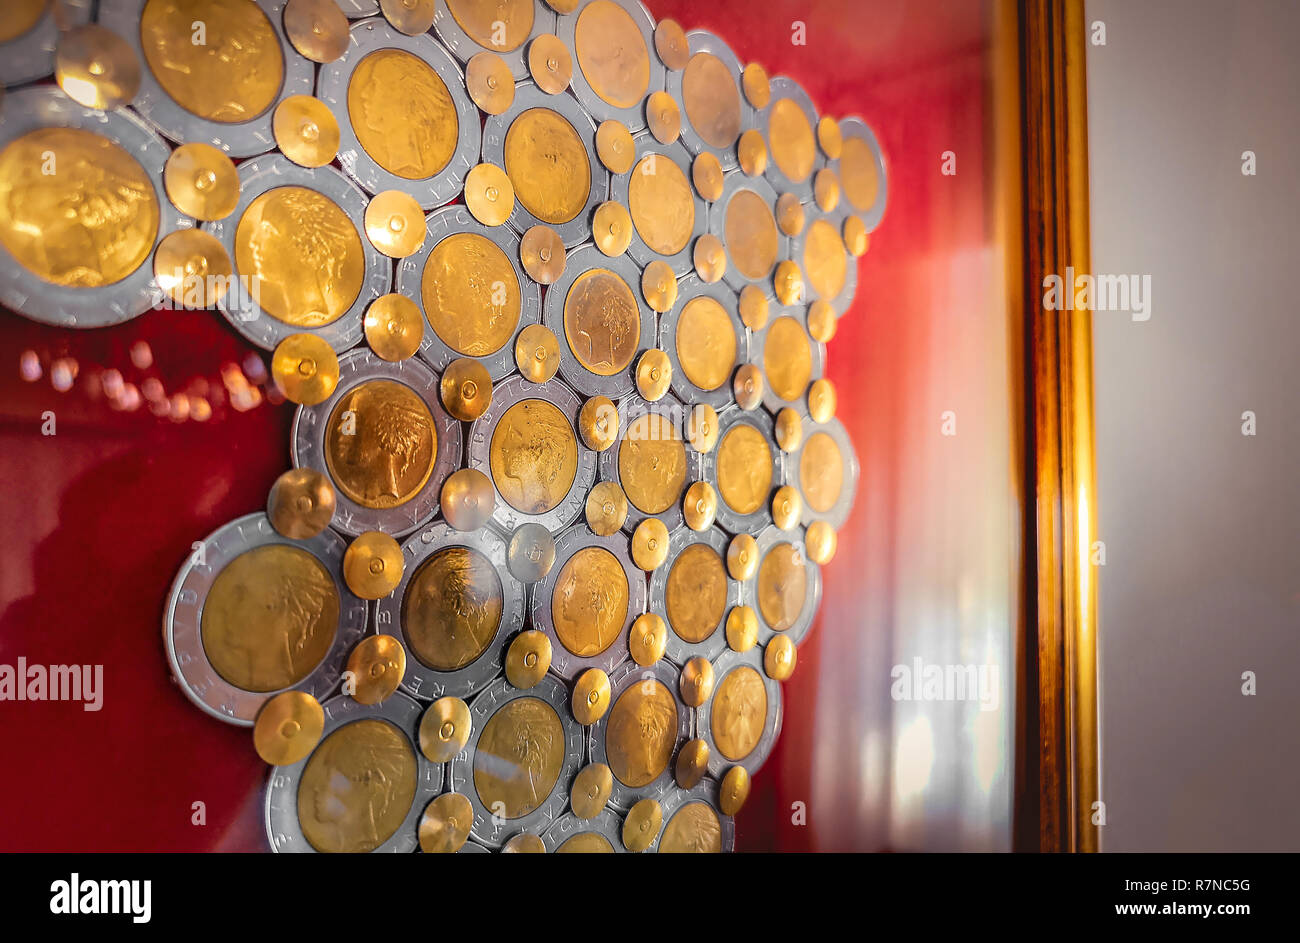 Italian Lire Coin Stock Photos Italian Lire Coin Stock Images Alamy